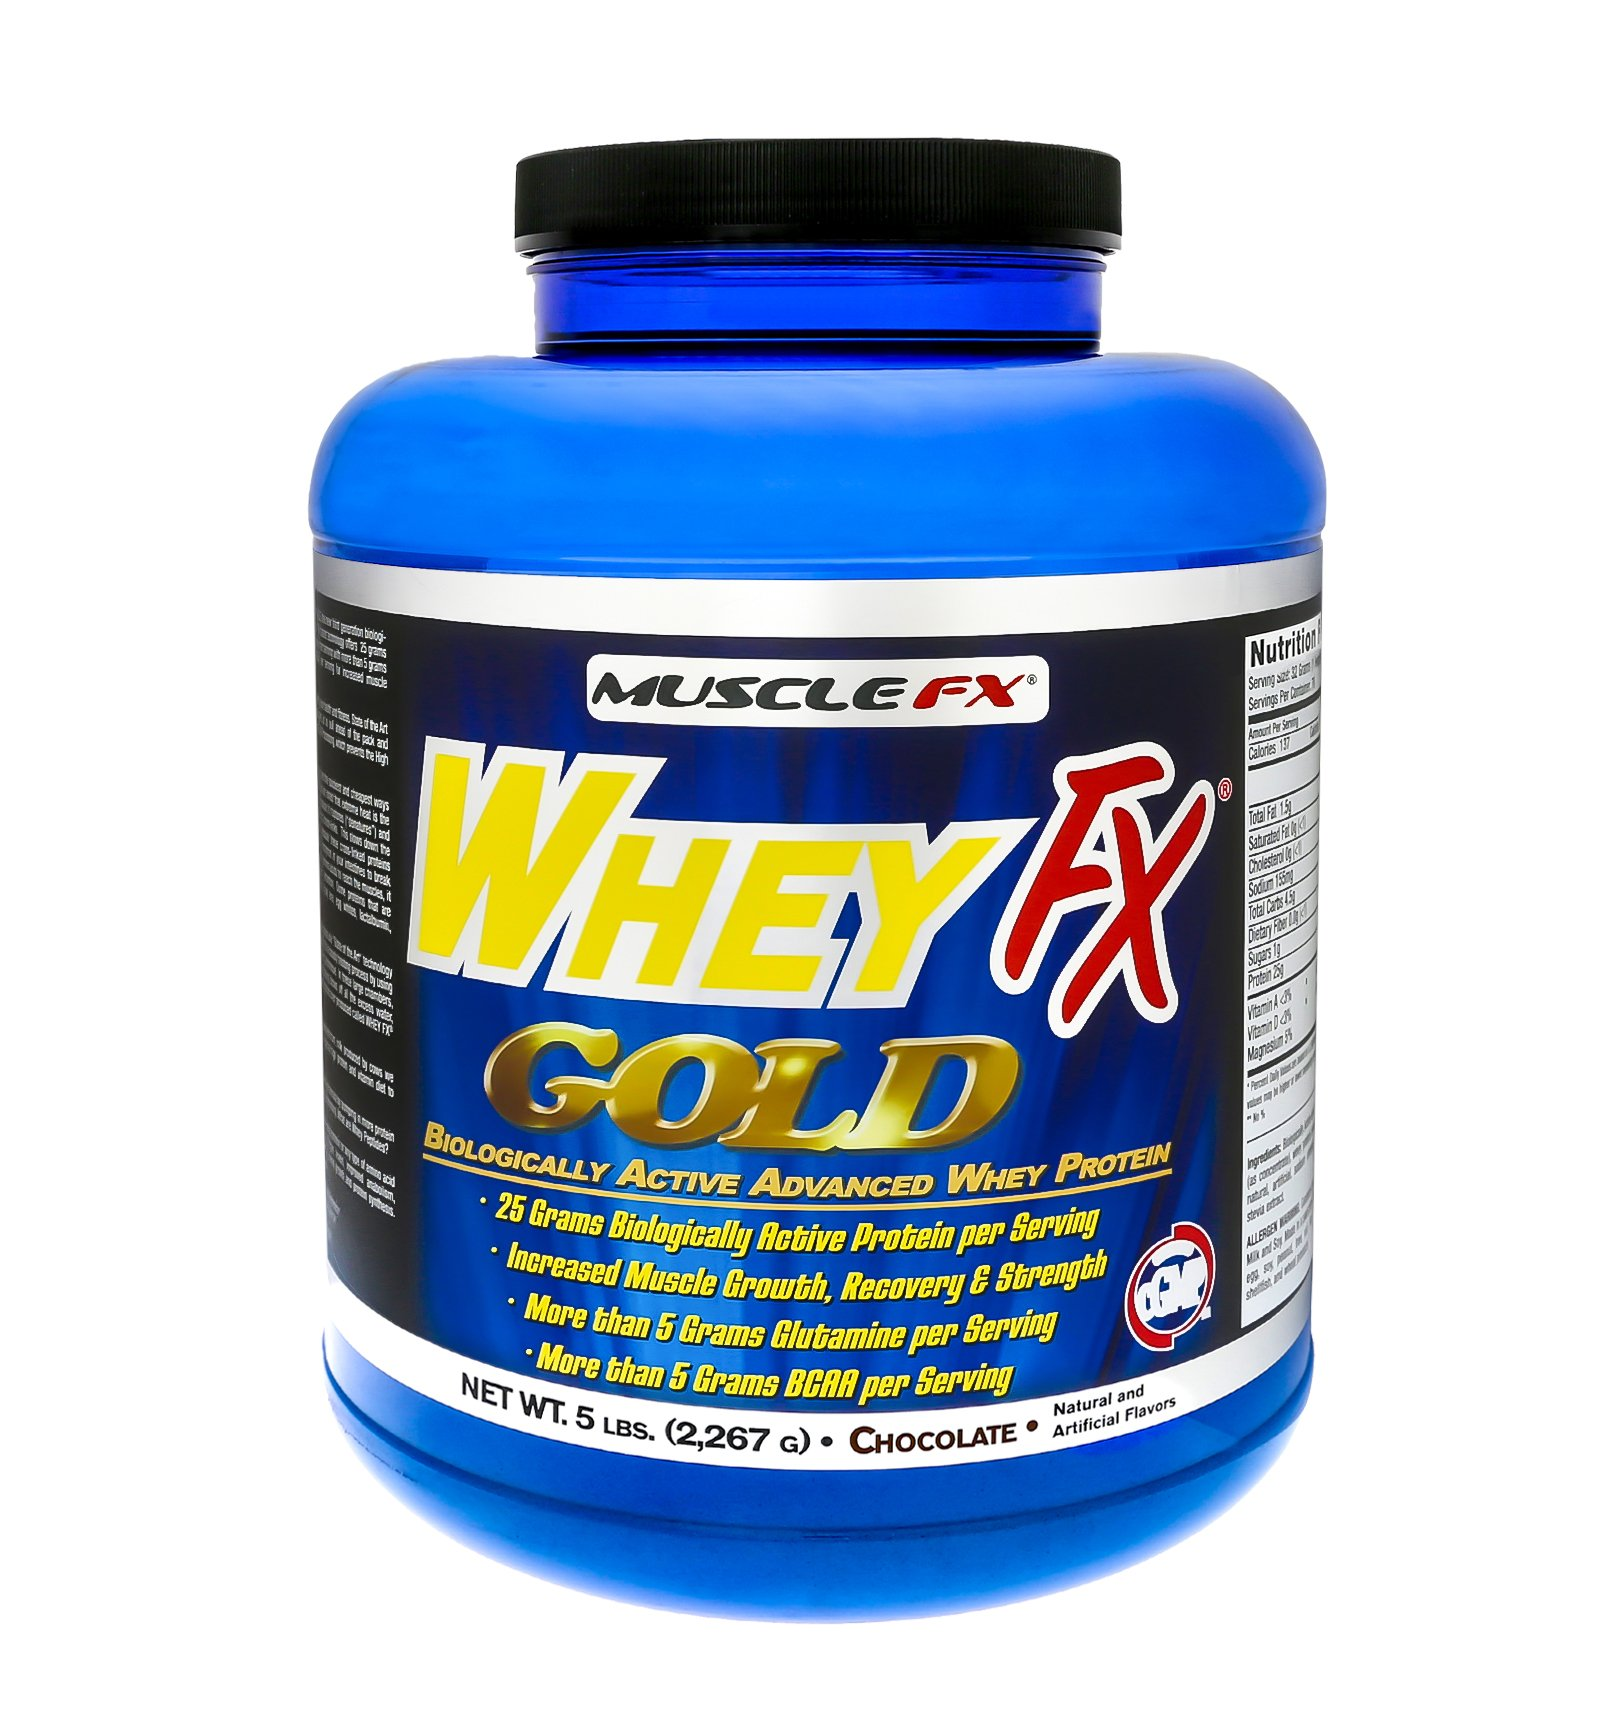 MUSCLE FX® WHEY FX GOLD® Biologically Active Advance Whey Protein 5 lbs Chocolate by MUSCLE FX